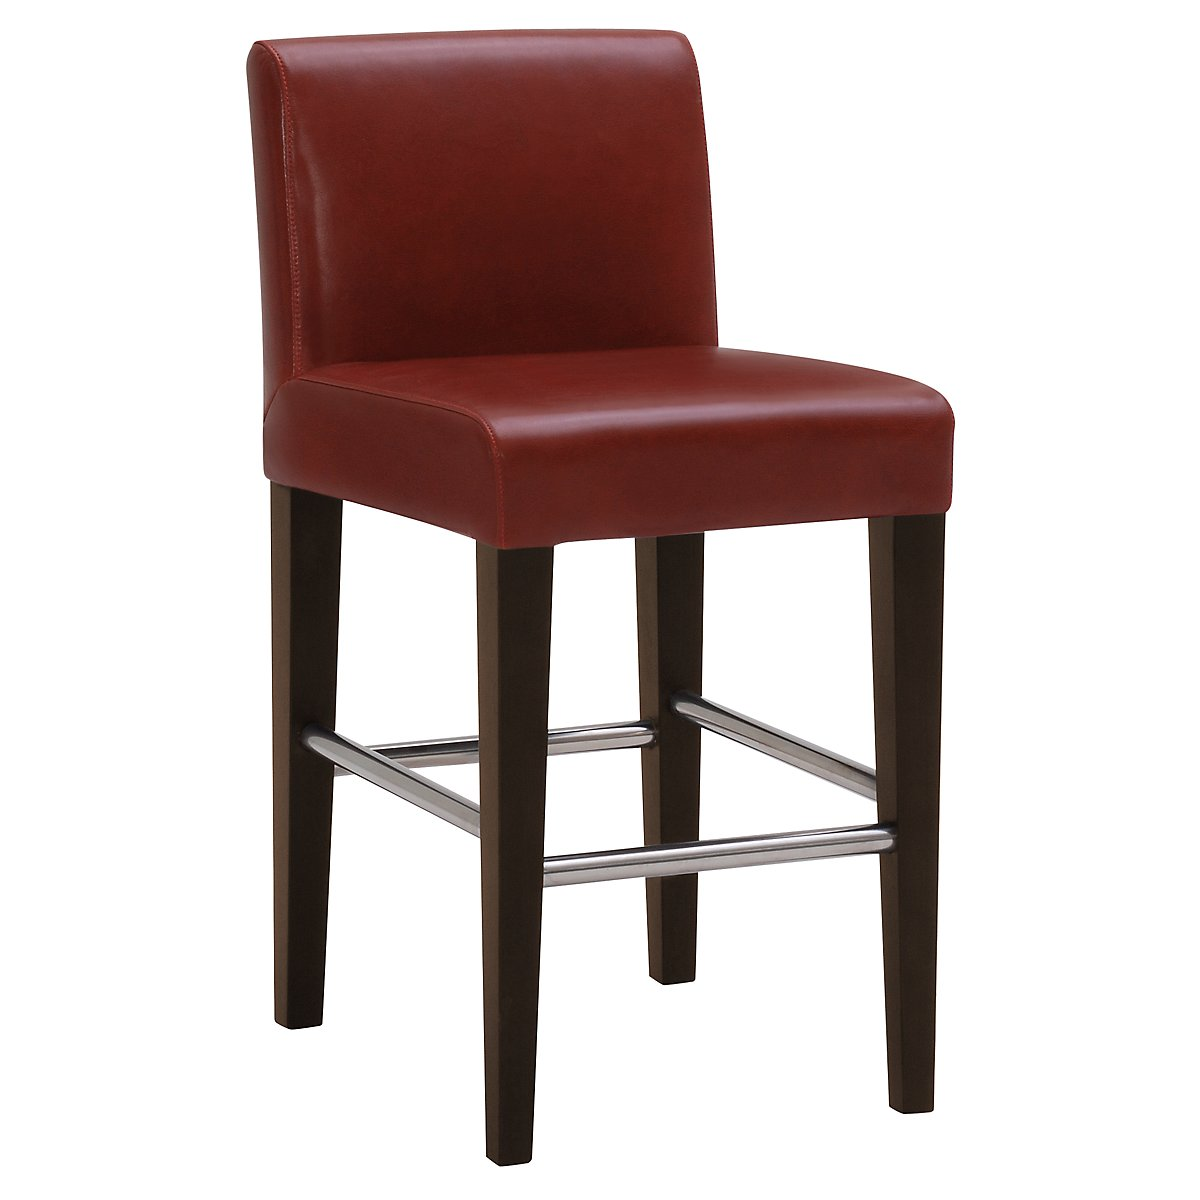 "Kyle Red Bonded Leather 24"" Upholstered Barstool"